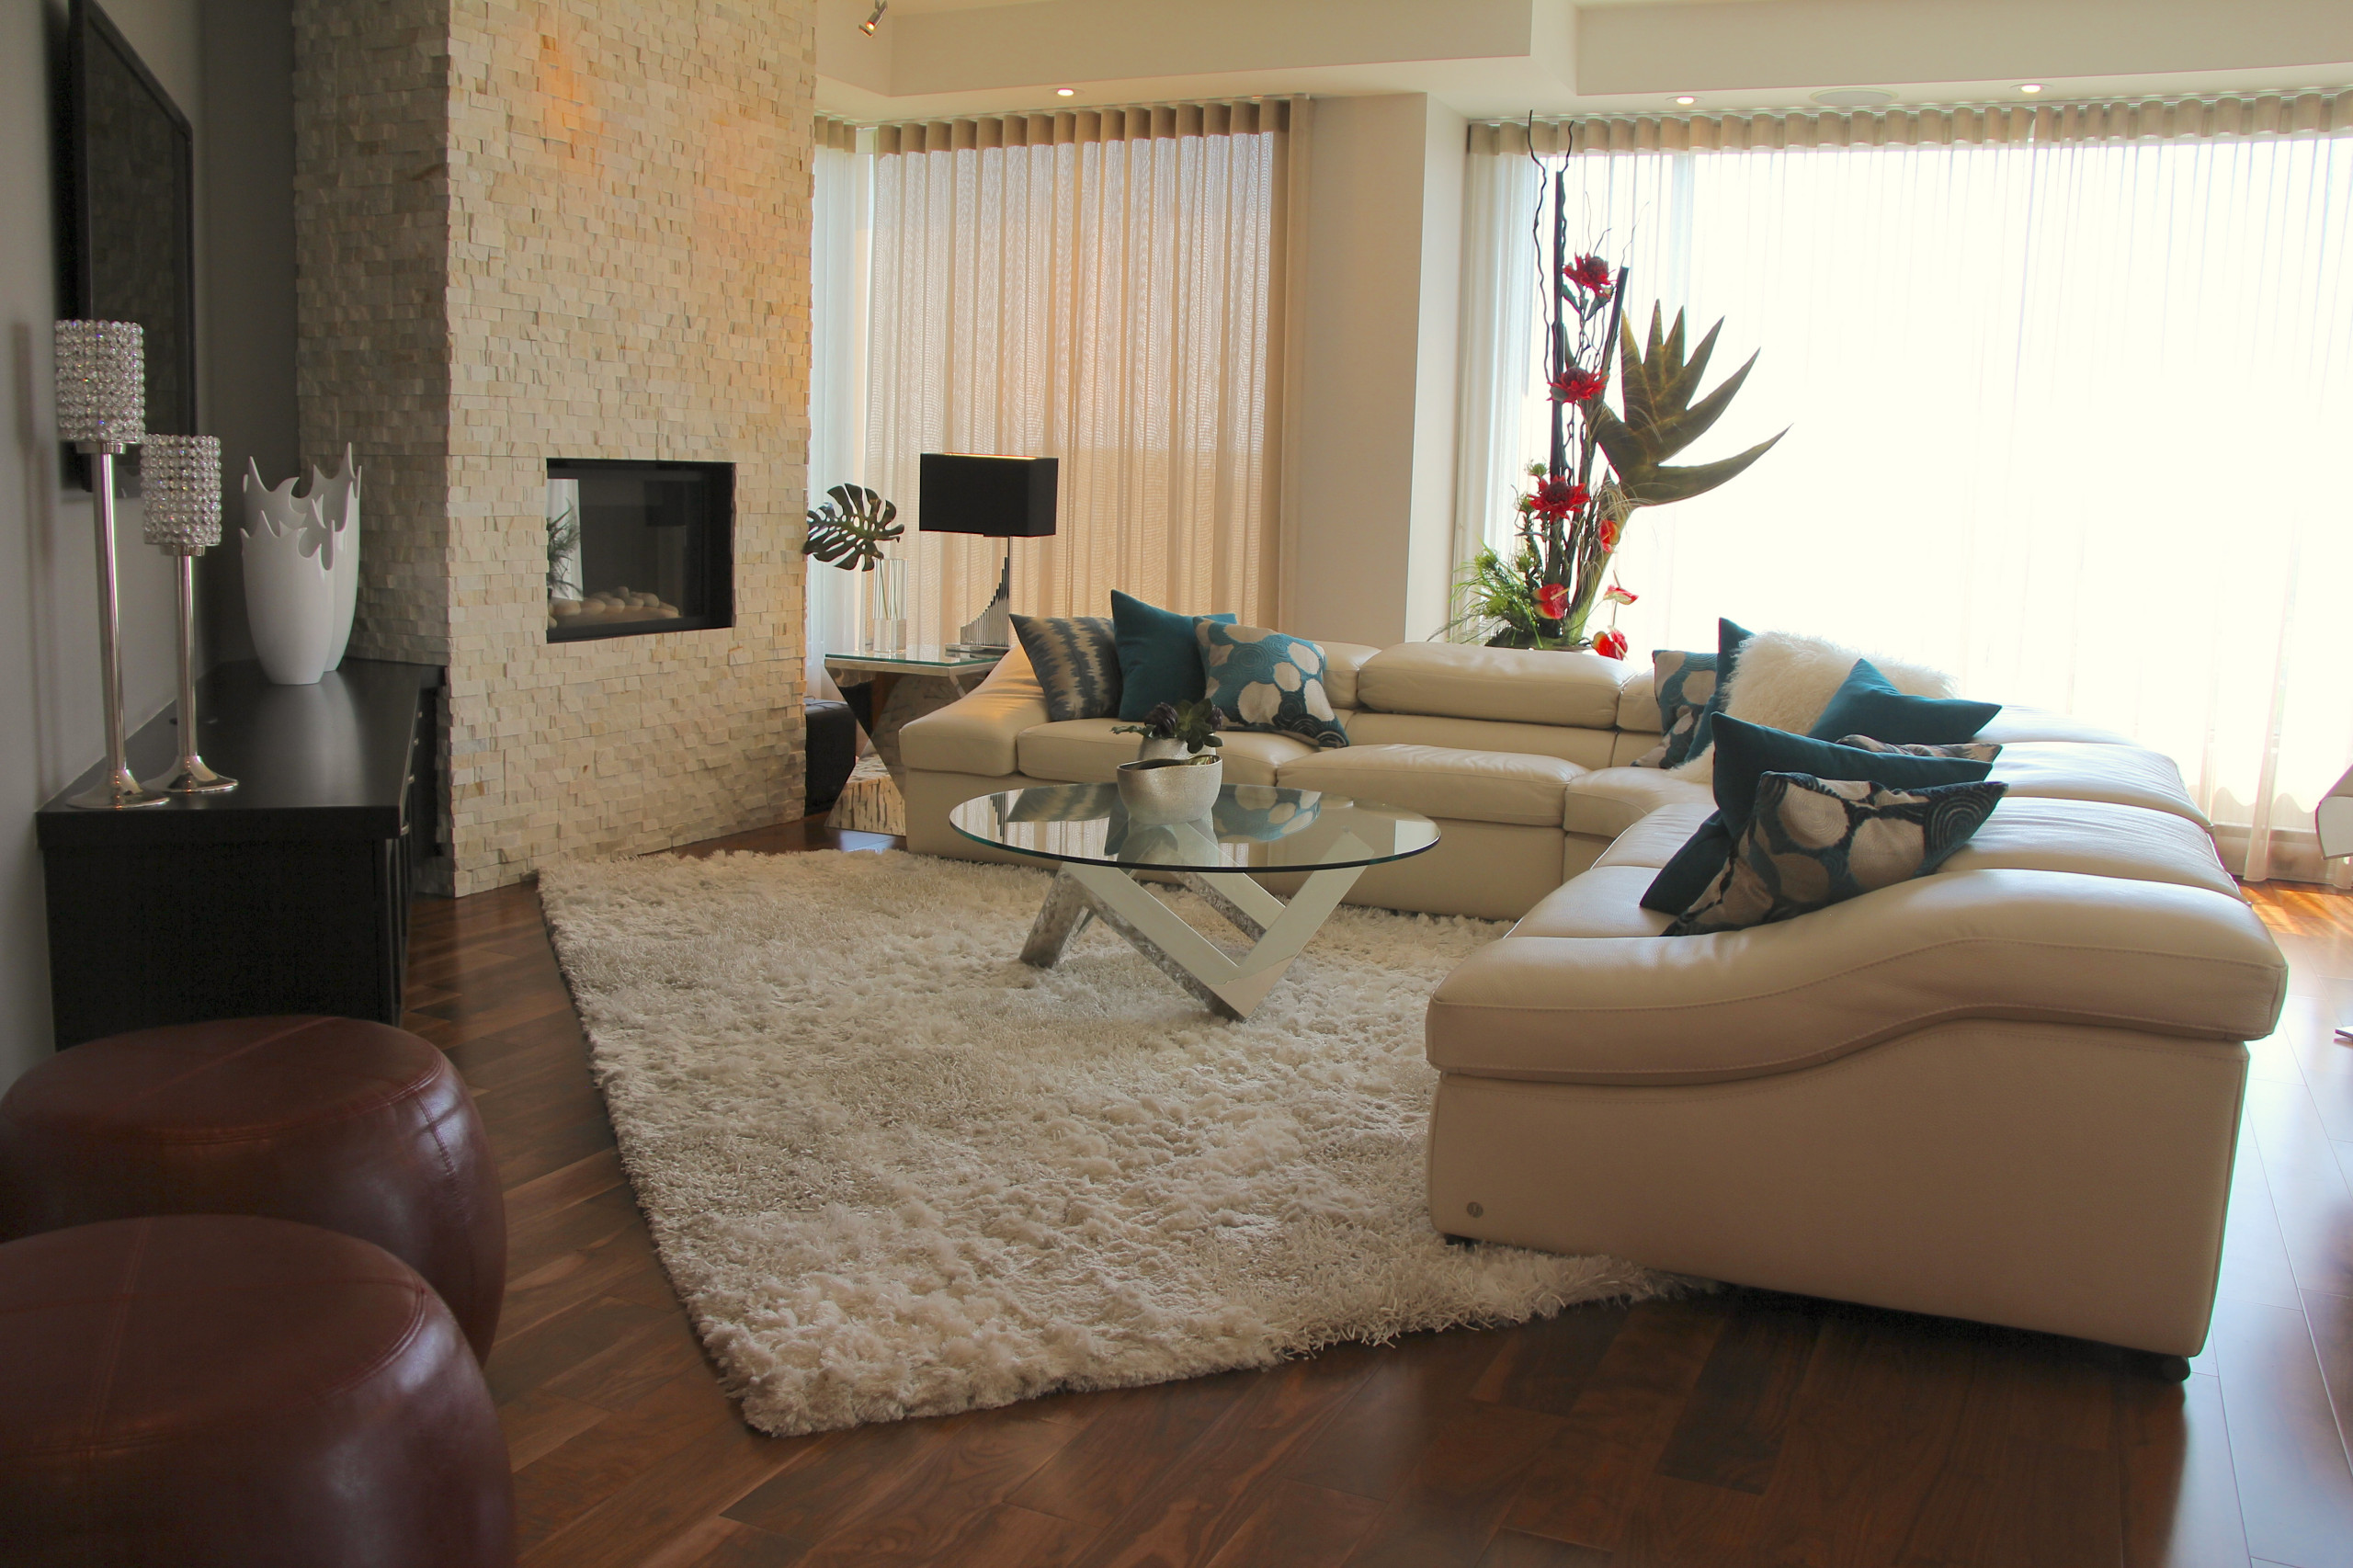 Boucherville Condo - Stylizing and Re-decorating